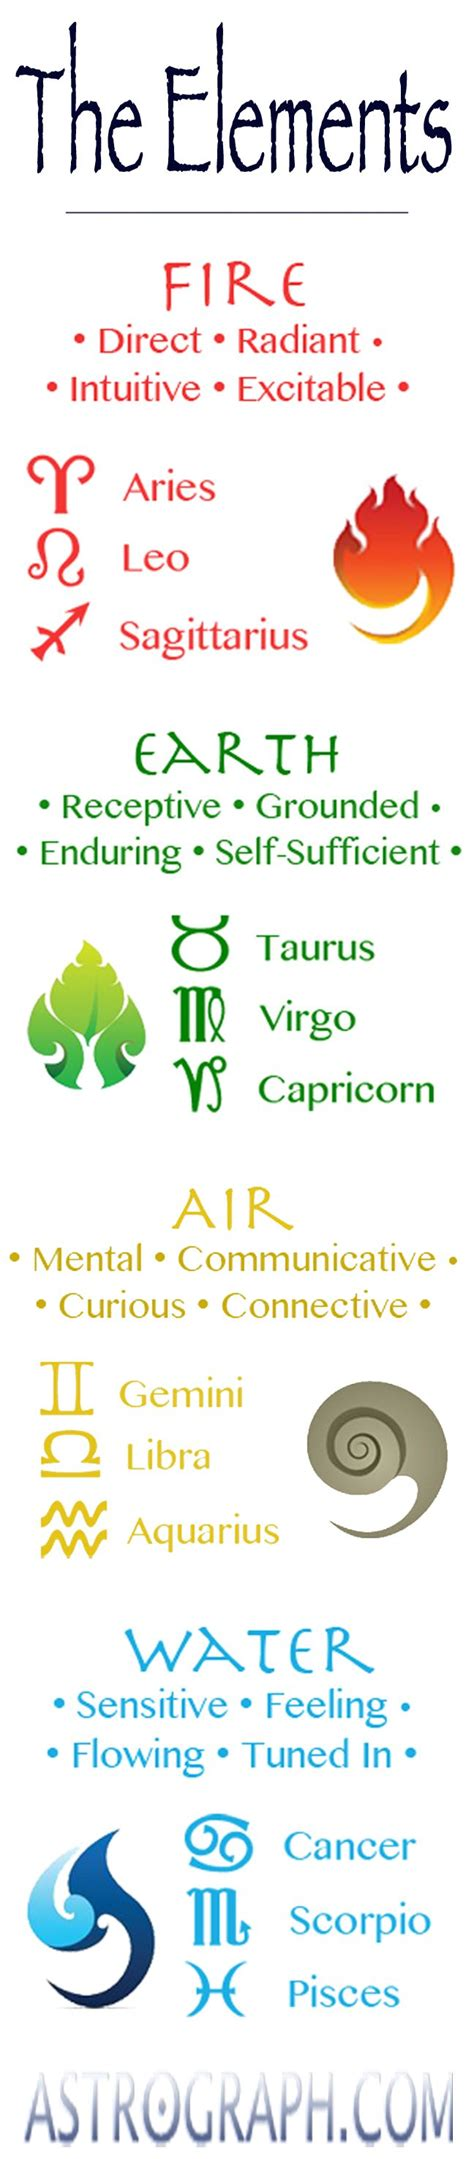 astrological zodiac signs the elements earth water